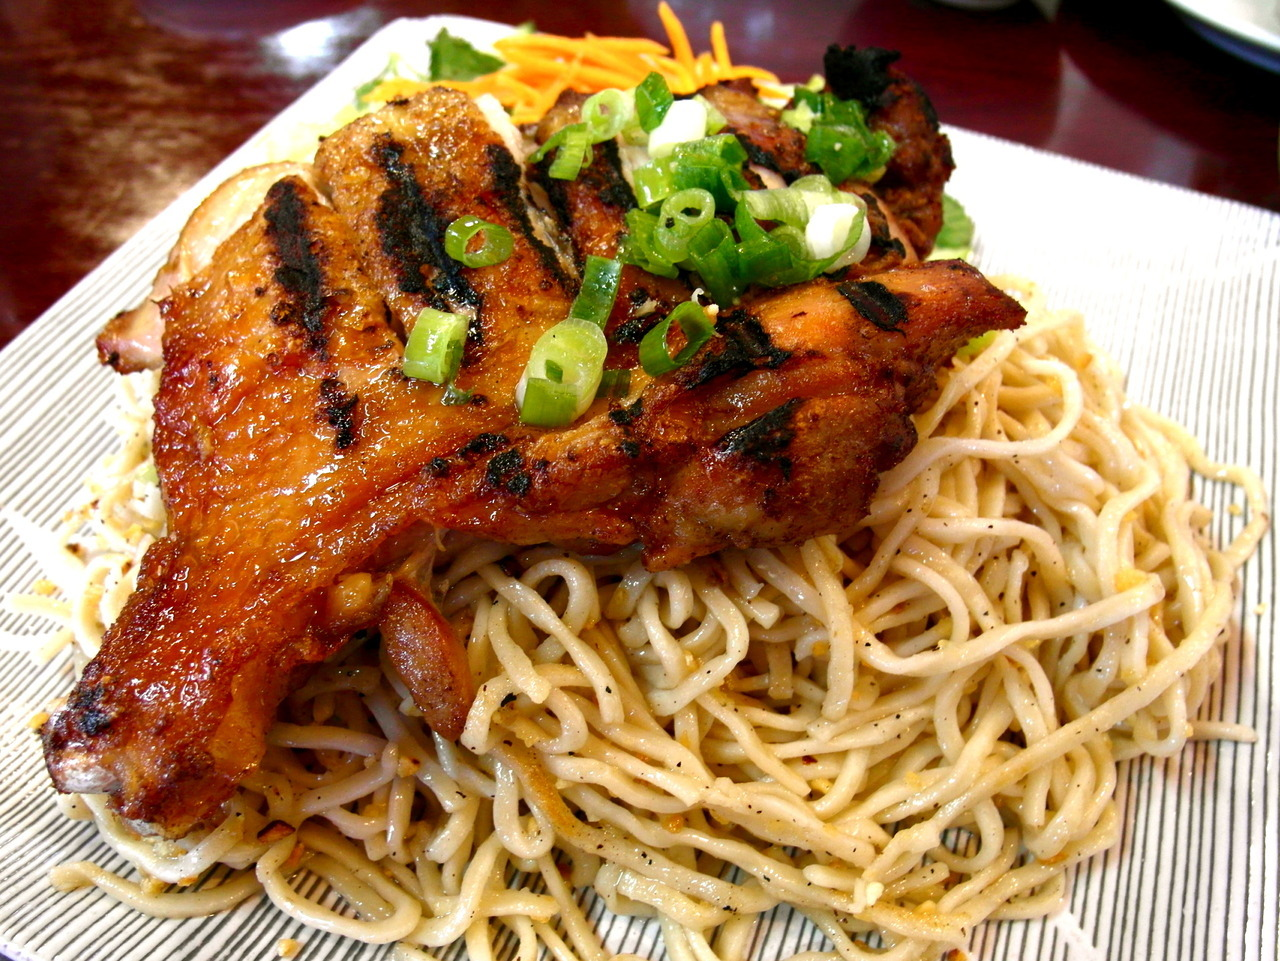 Grilled five-spice chicken over garlic noodles. Perfect pairing. A Vietnamese/Chinese treat. Awesome! Ben Tre Vietnamese Homestyle Cuisine 219 Grand Avenue South San Francisco CA 94080 Phone: 650.952.2243 www.bentrerestaurant.com